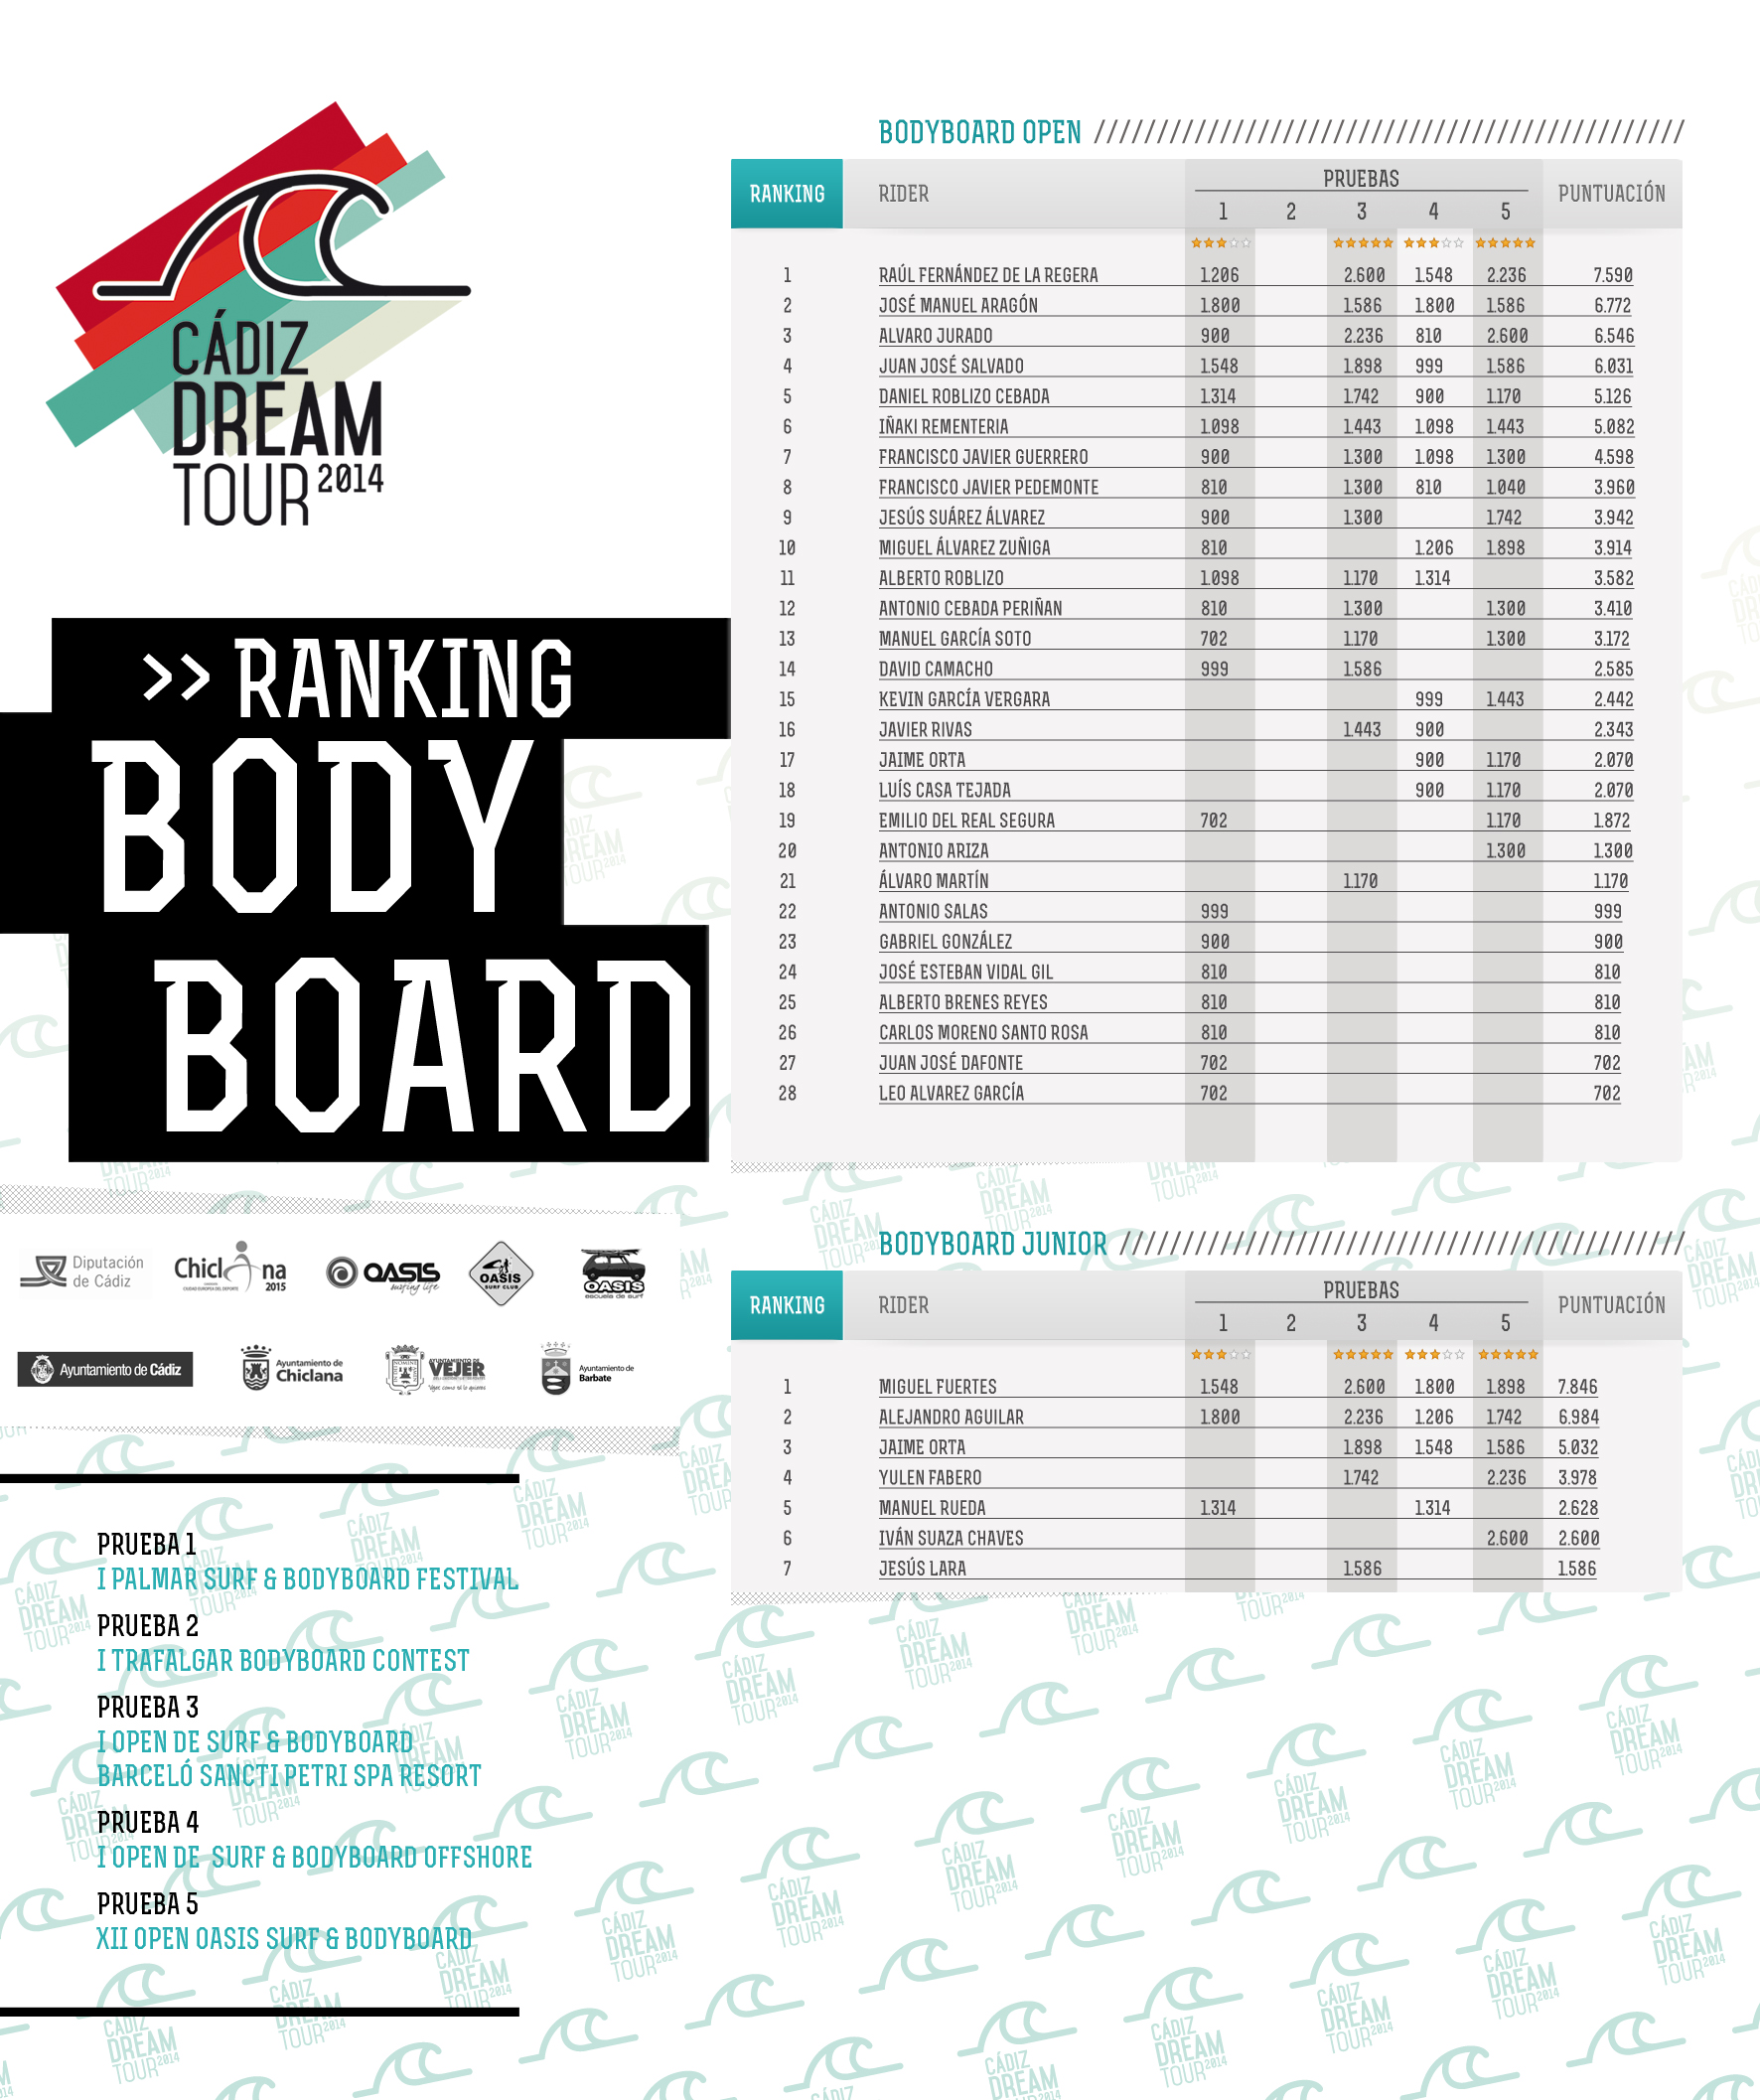 ranking-bodyboard-cadiz-dream-tour-surf